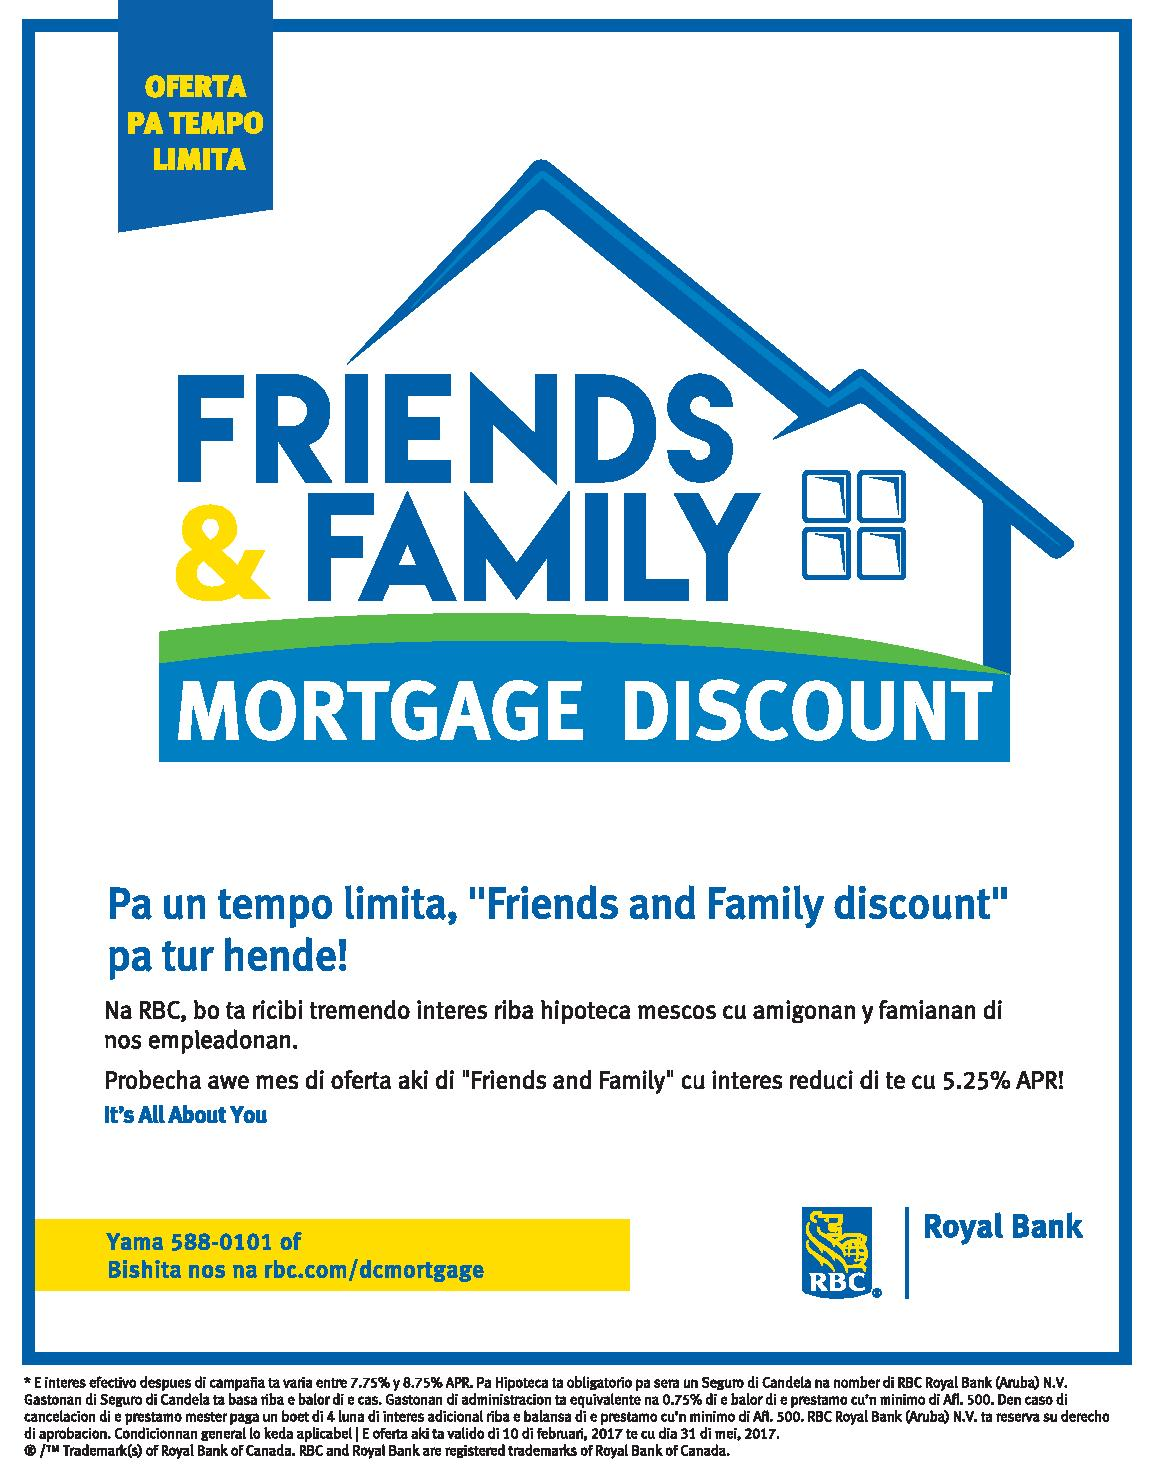 RBC Friends & Family Mortgage Discount | fngv